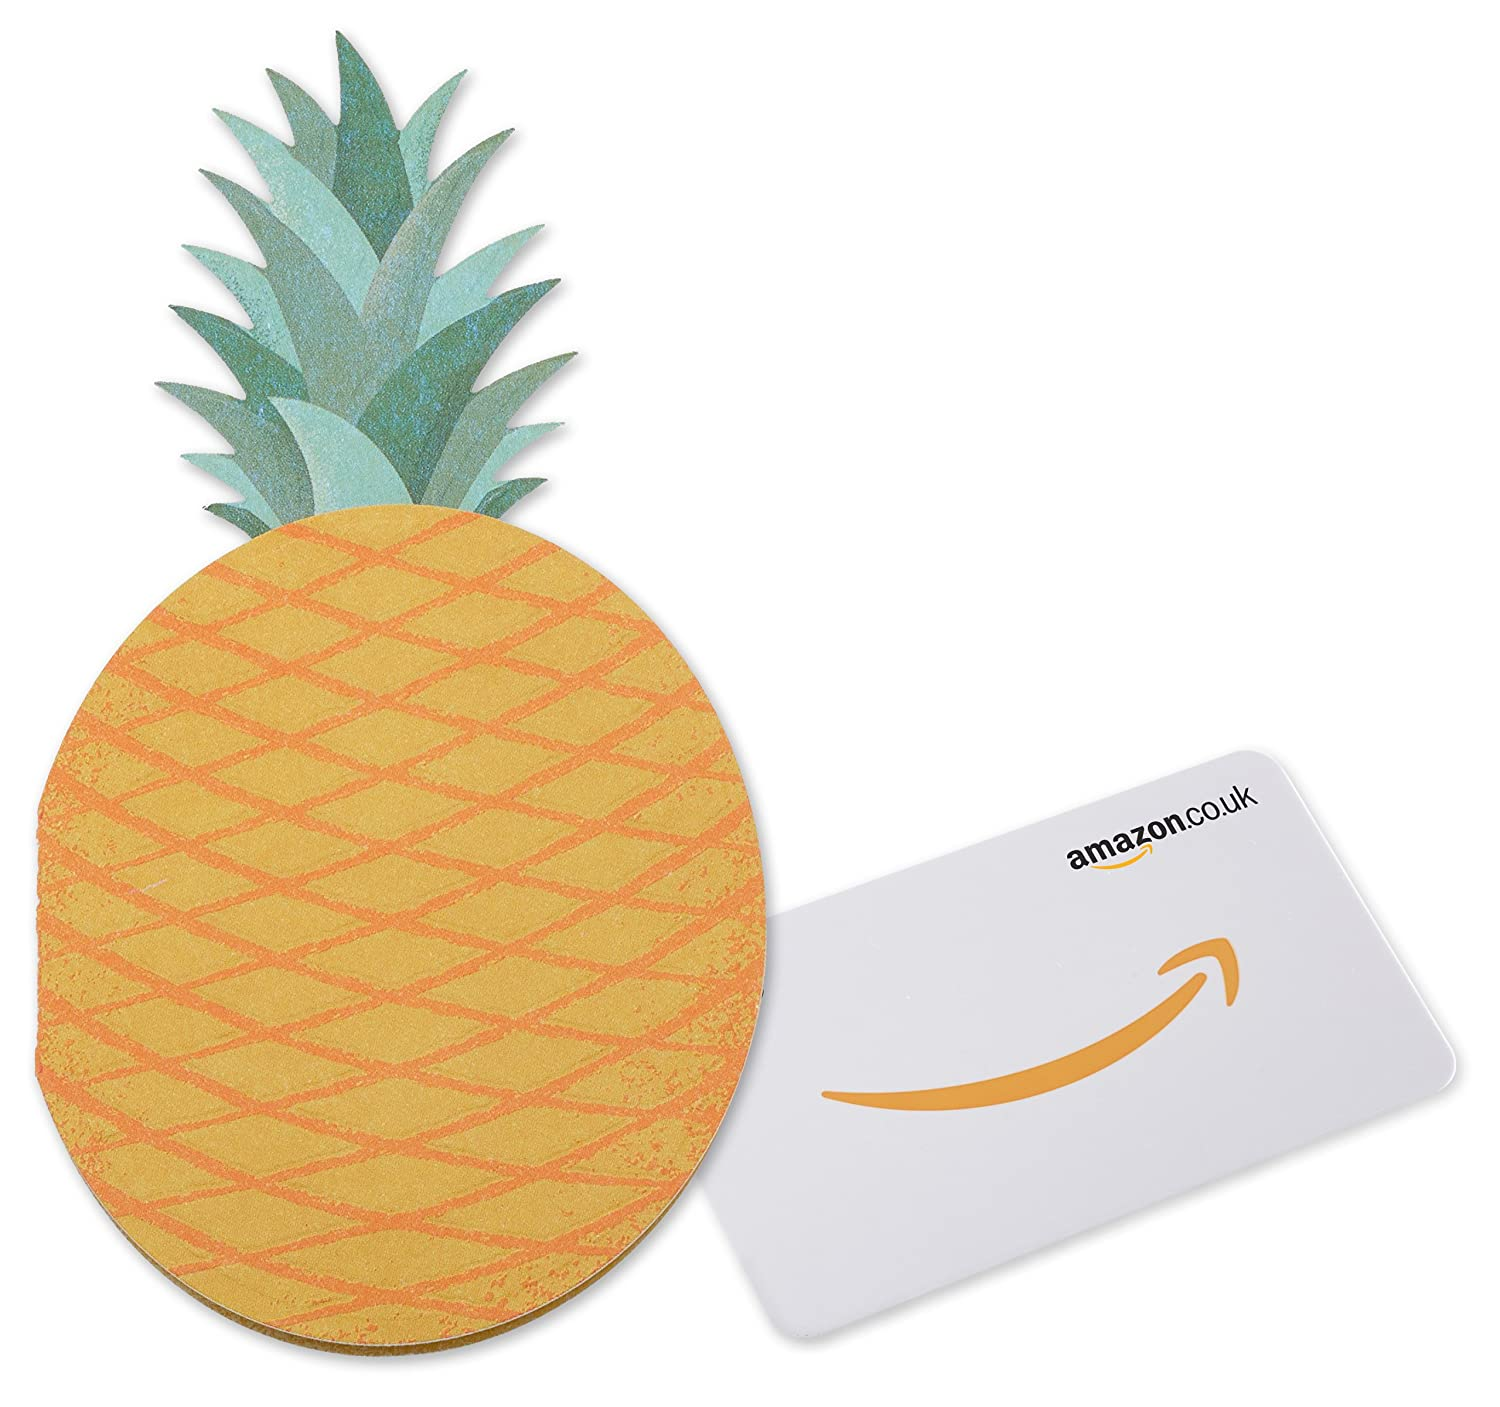 Amazon.co.uk Gift Card in a Pineapple Sleeve Amazon EU S.à.r.l. Fixed